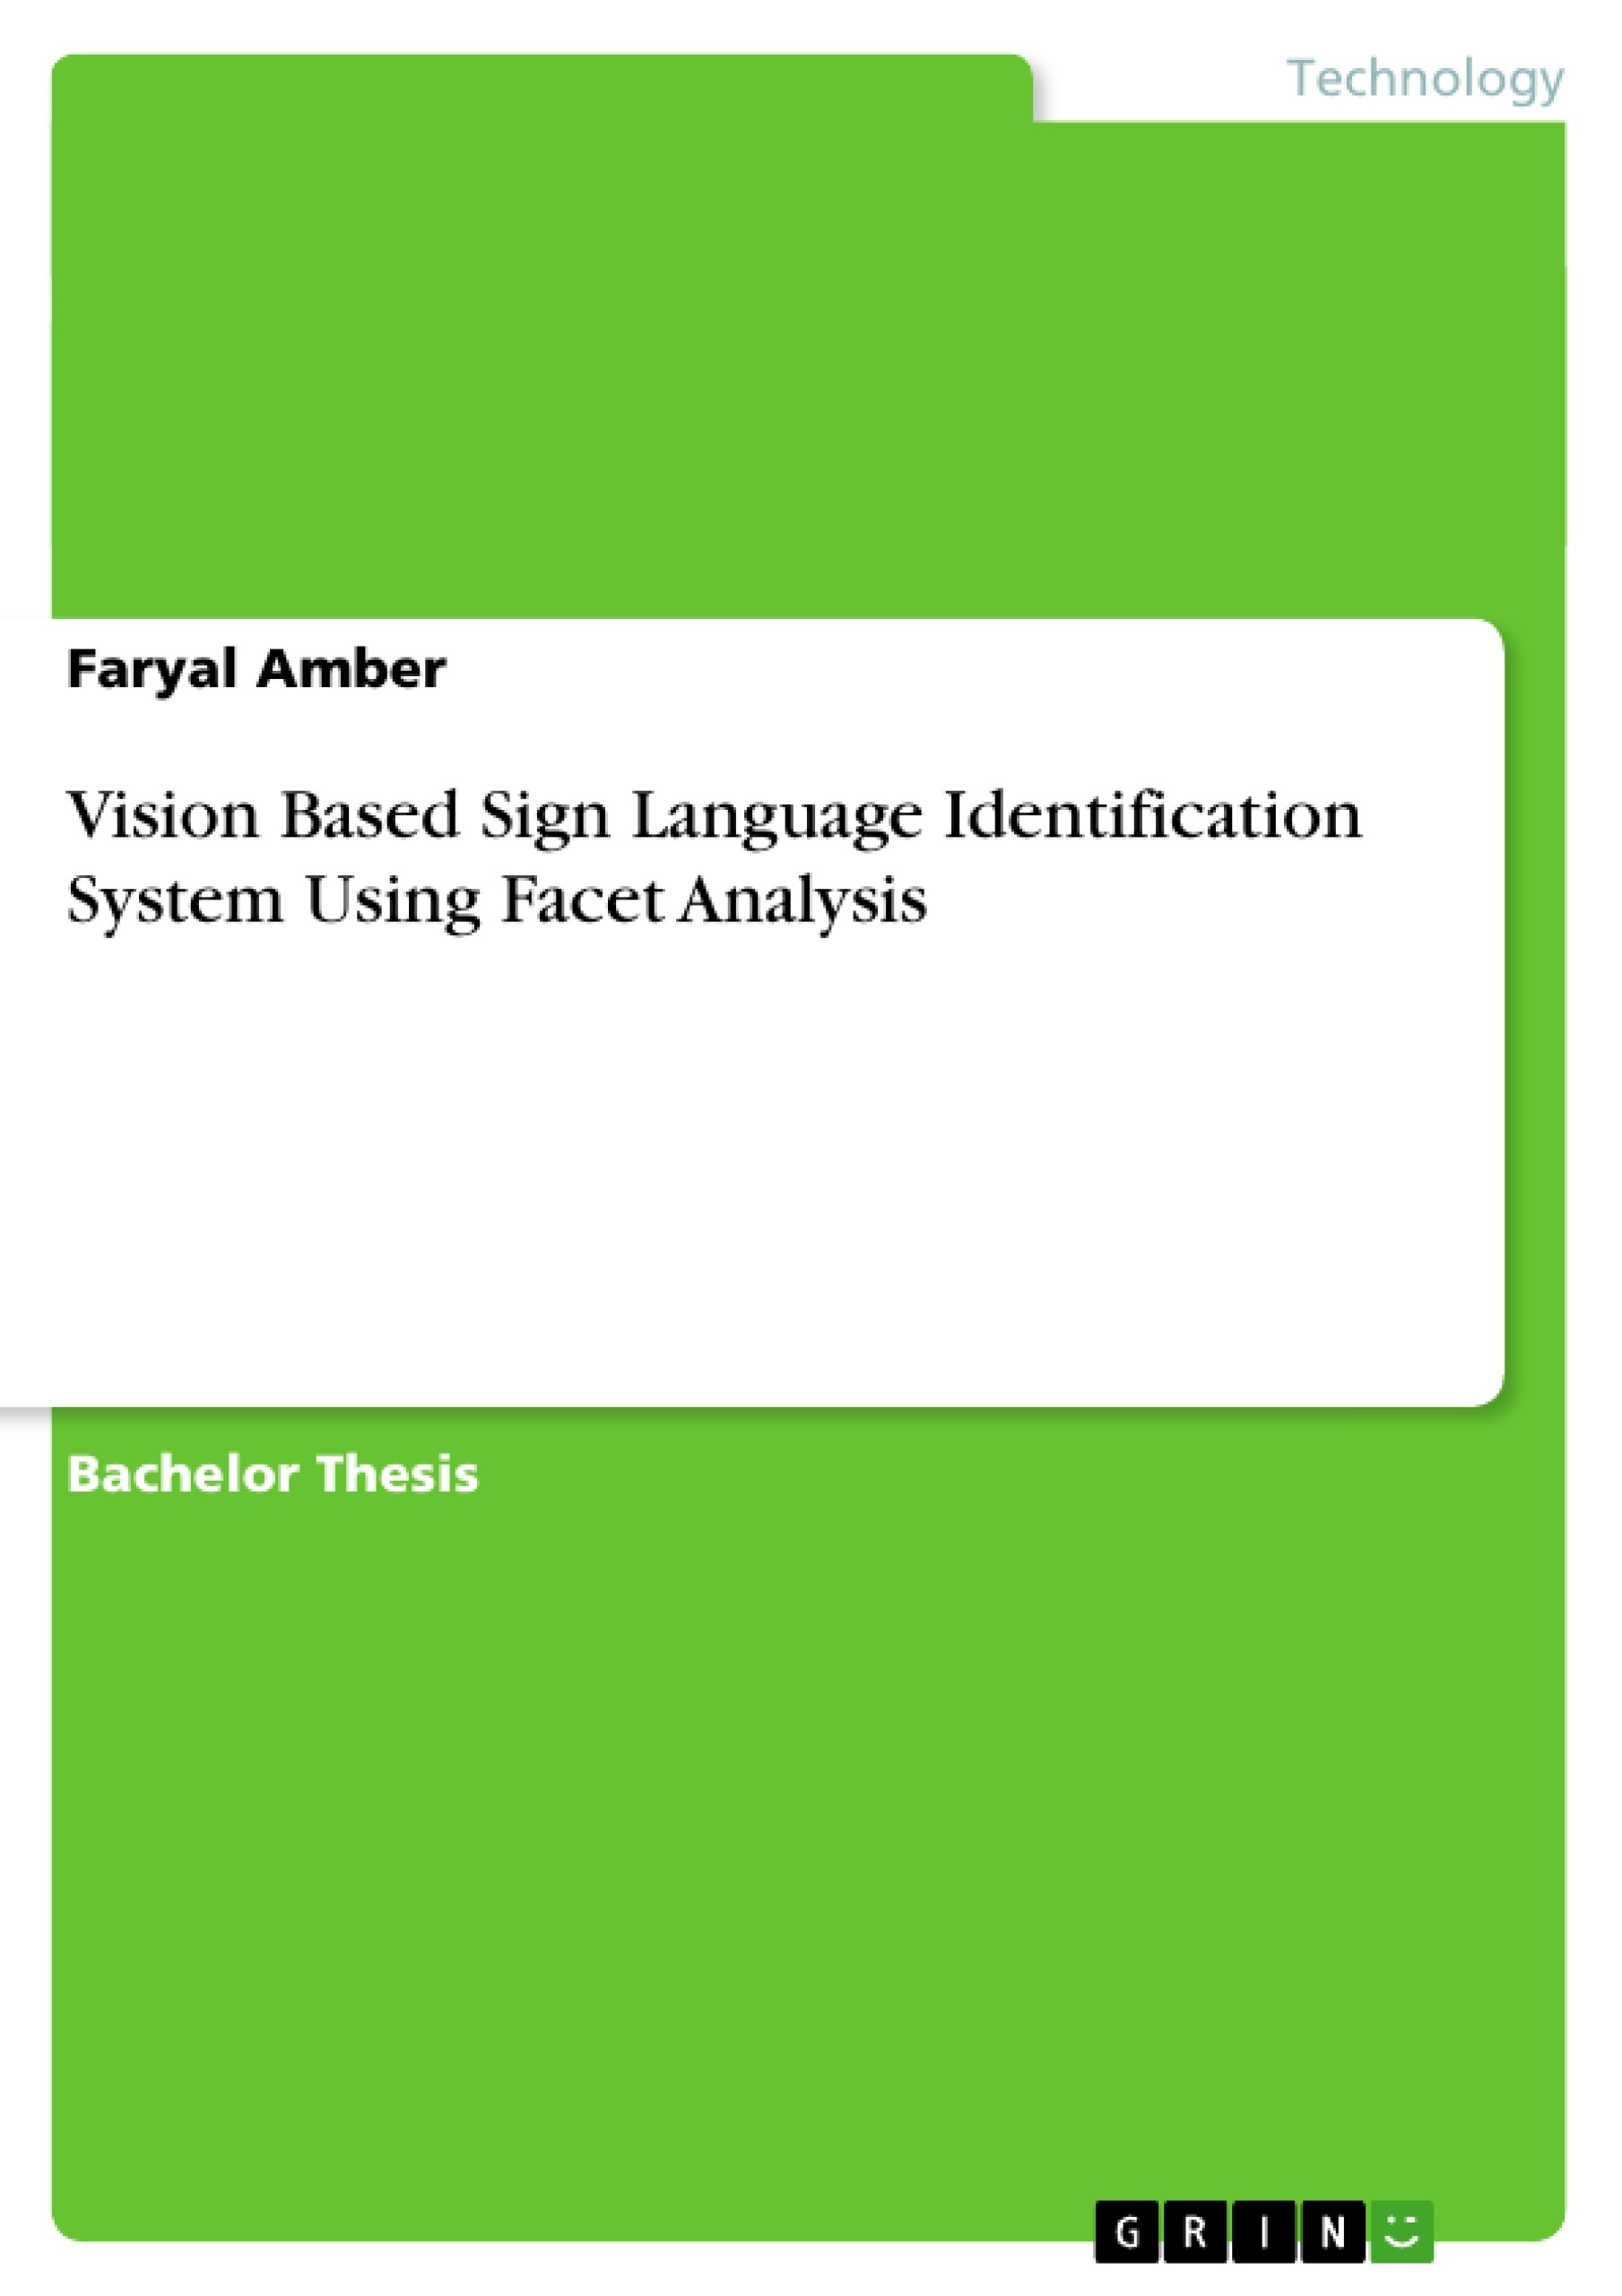 Title: Vision Based Sign Language Identification System Using Facet Analysis